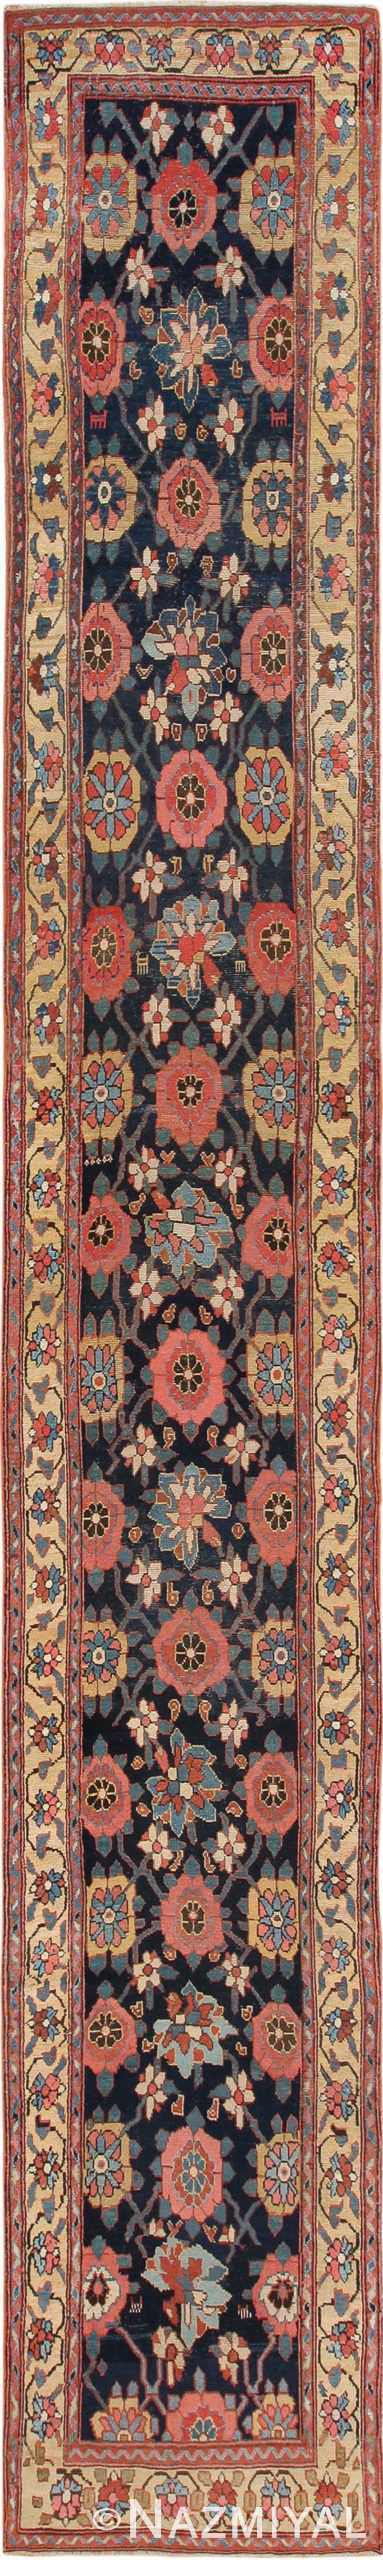 Early 19th Century Tribal Northwest Persian Runner Rug 49499 - Nazmiyal